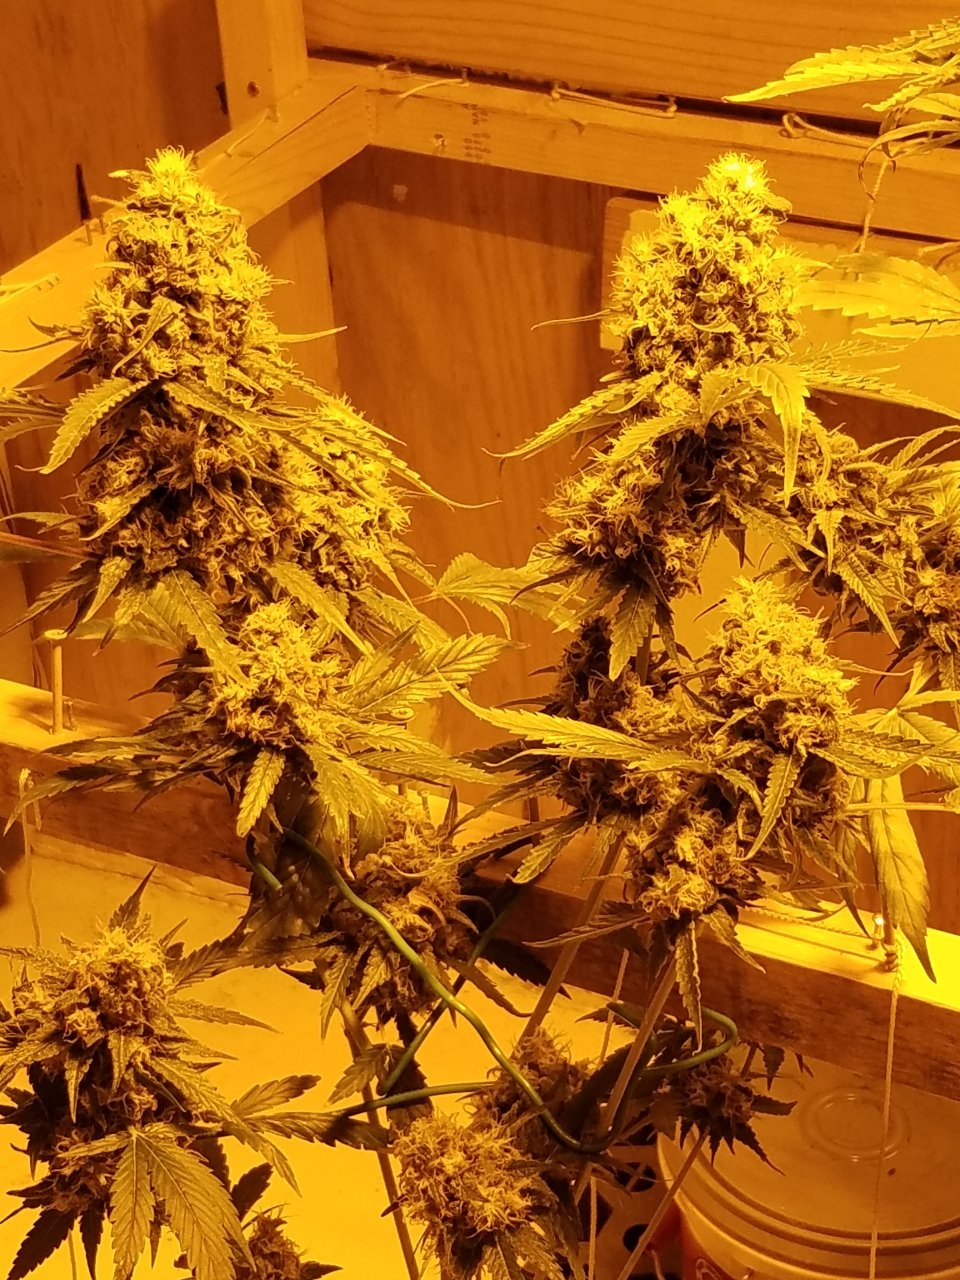 Clone Forest Dream #4 flower days #49 (drought) stressed colas